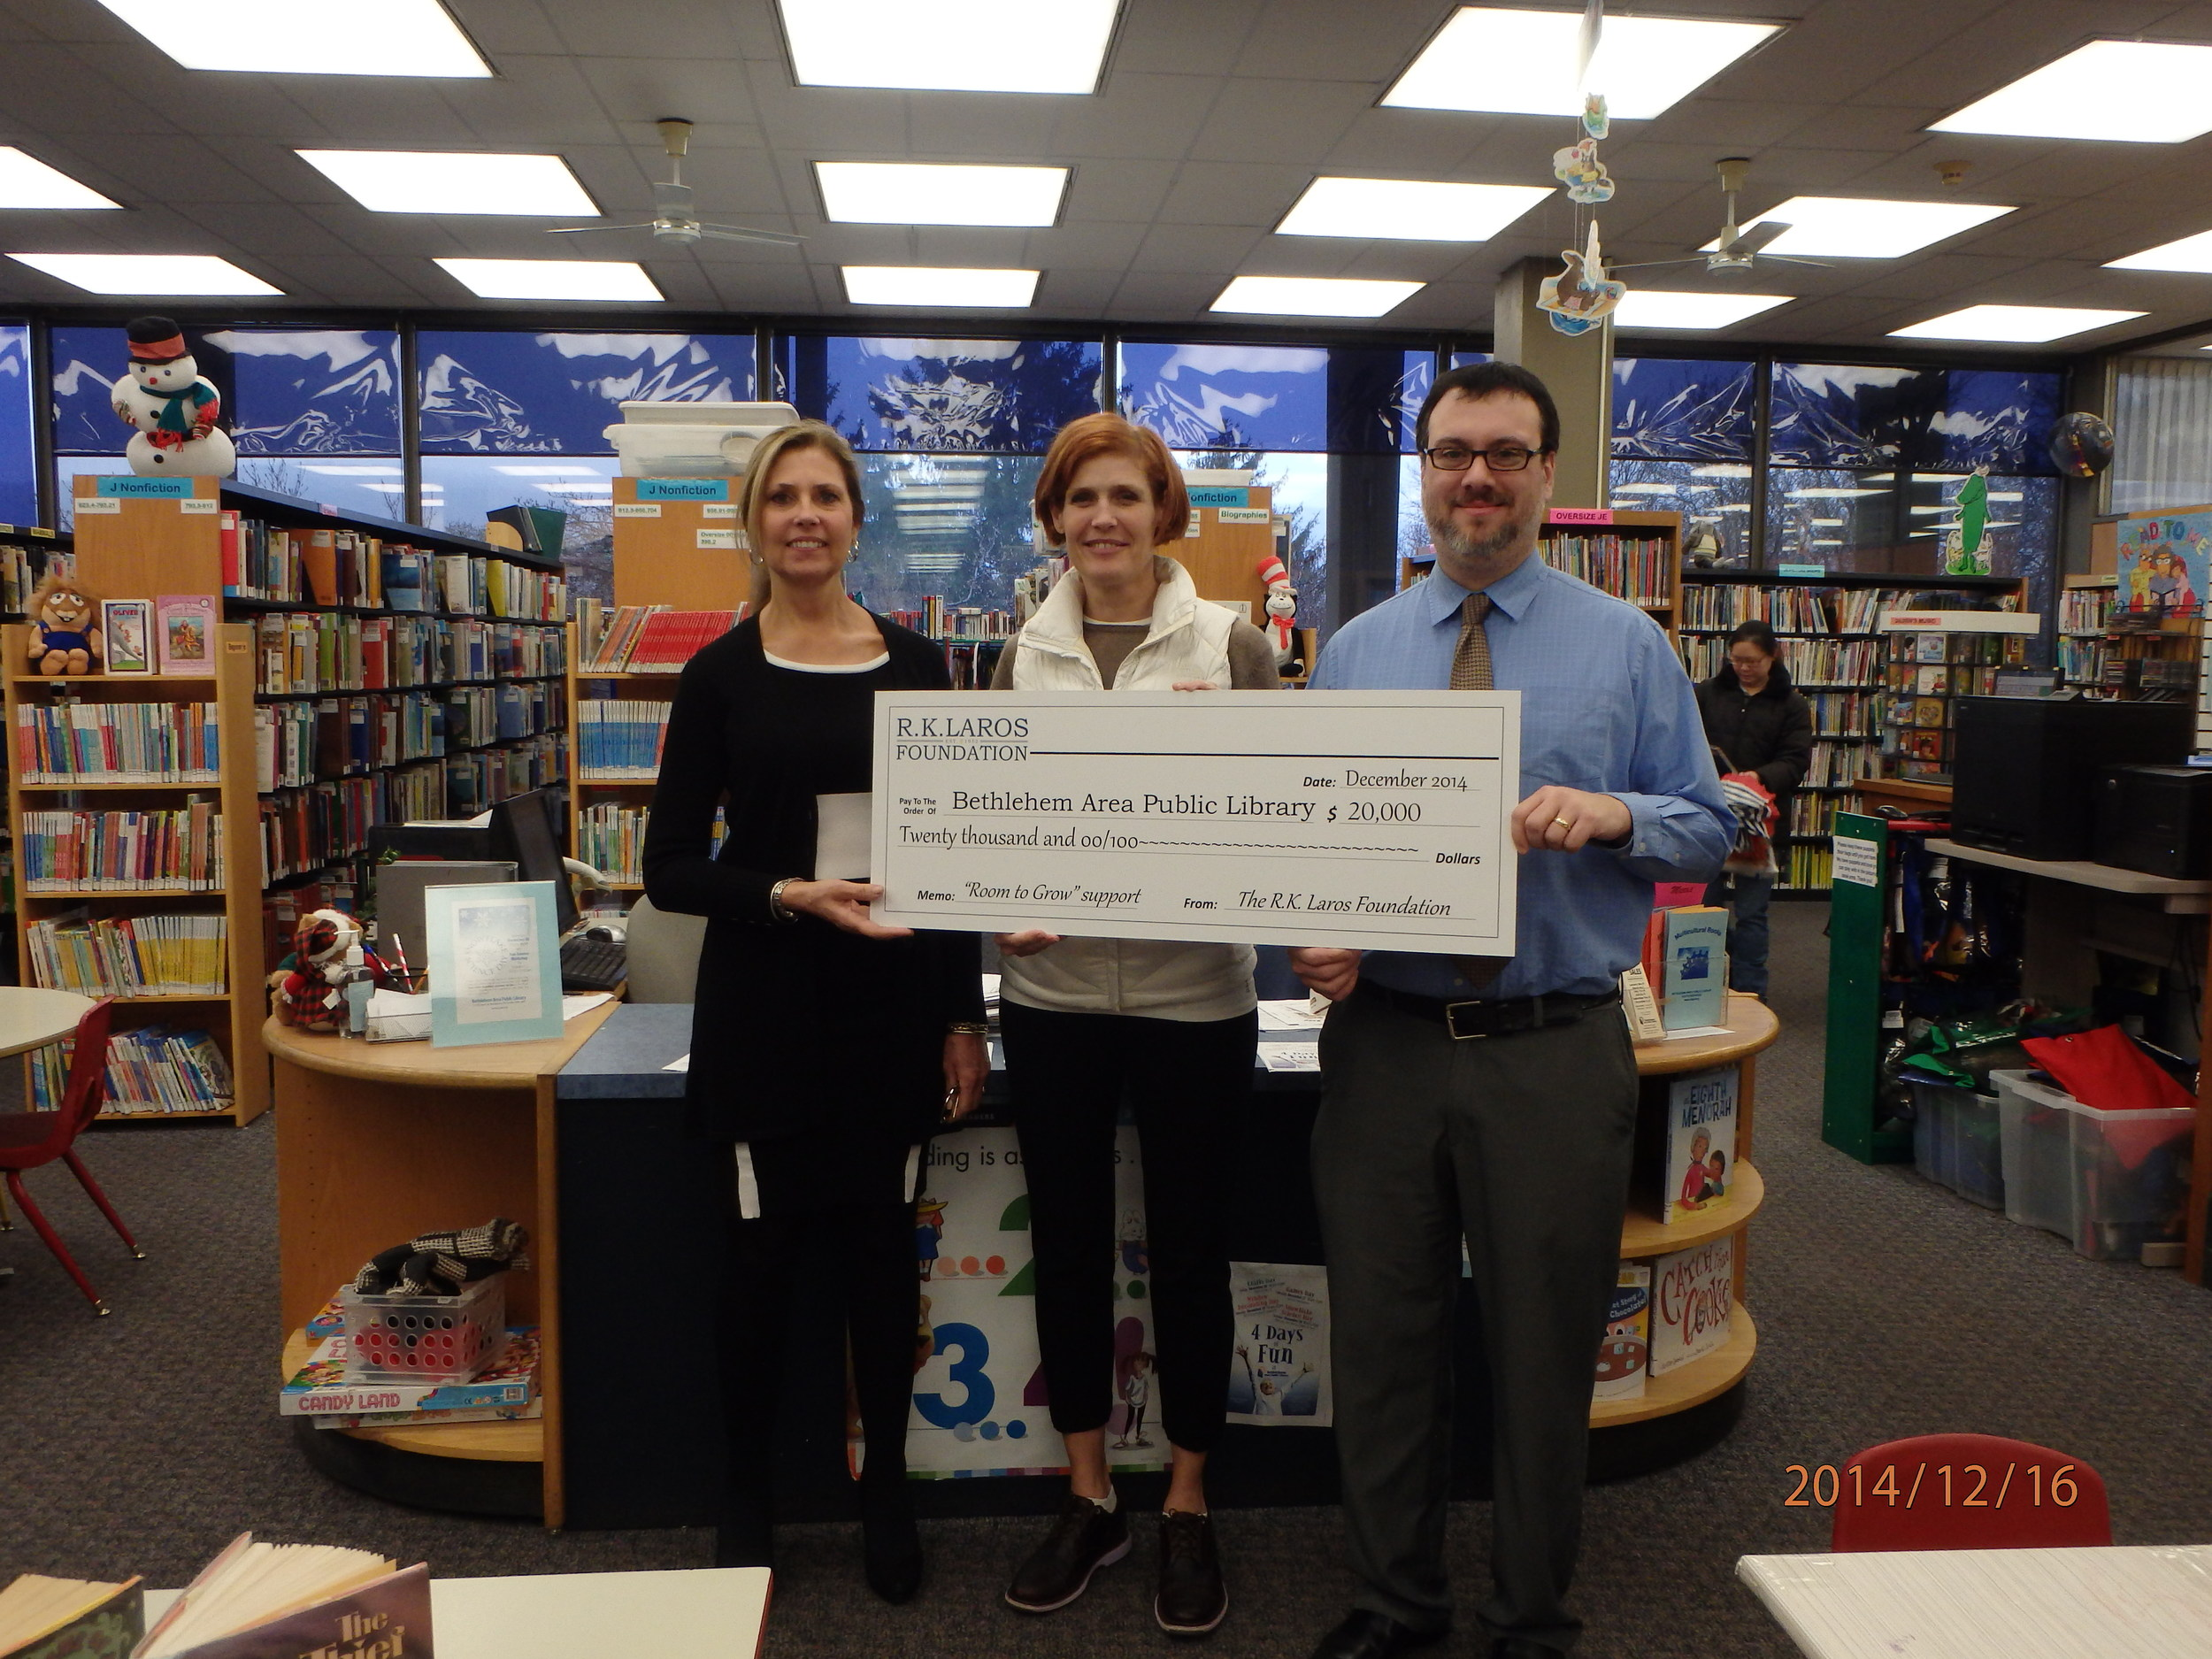 """R.K. Laros Trustee Laura Bennett Shelton awards the Bethlehem Public Library Grant to Executive DirectorJosh Berk and Development Director Liza Holzinger supporting the """"Room to Grow"""" campaign."""